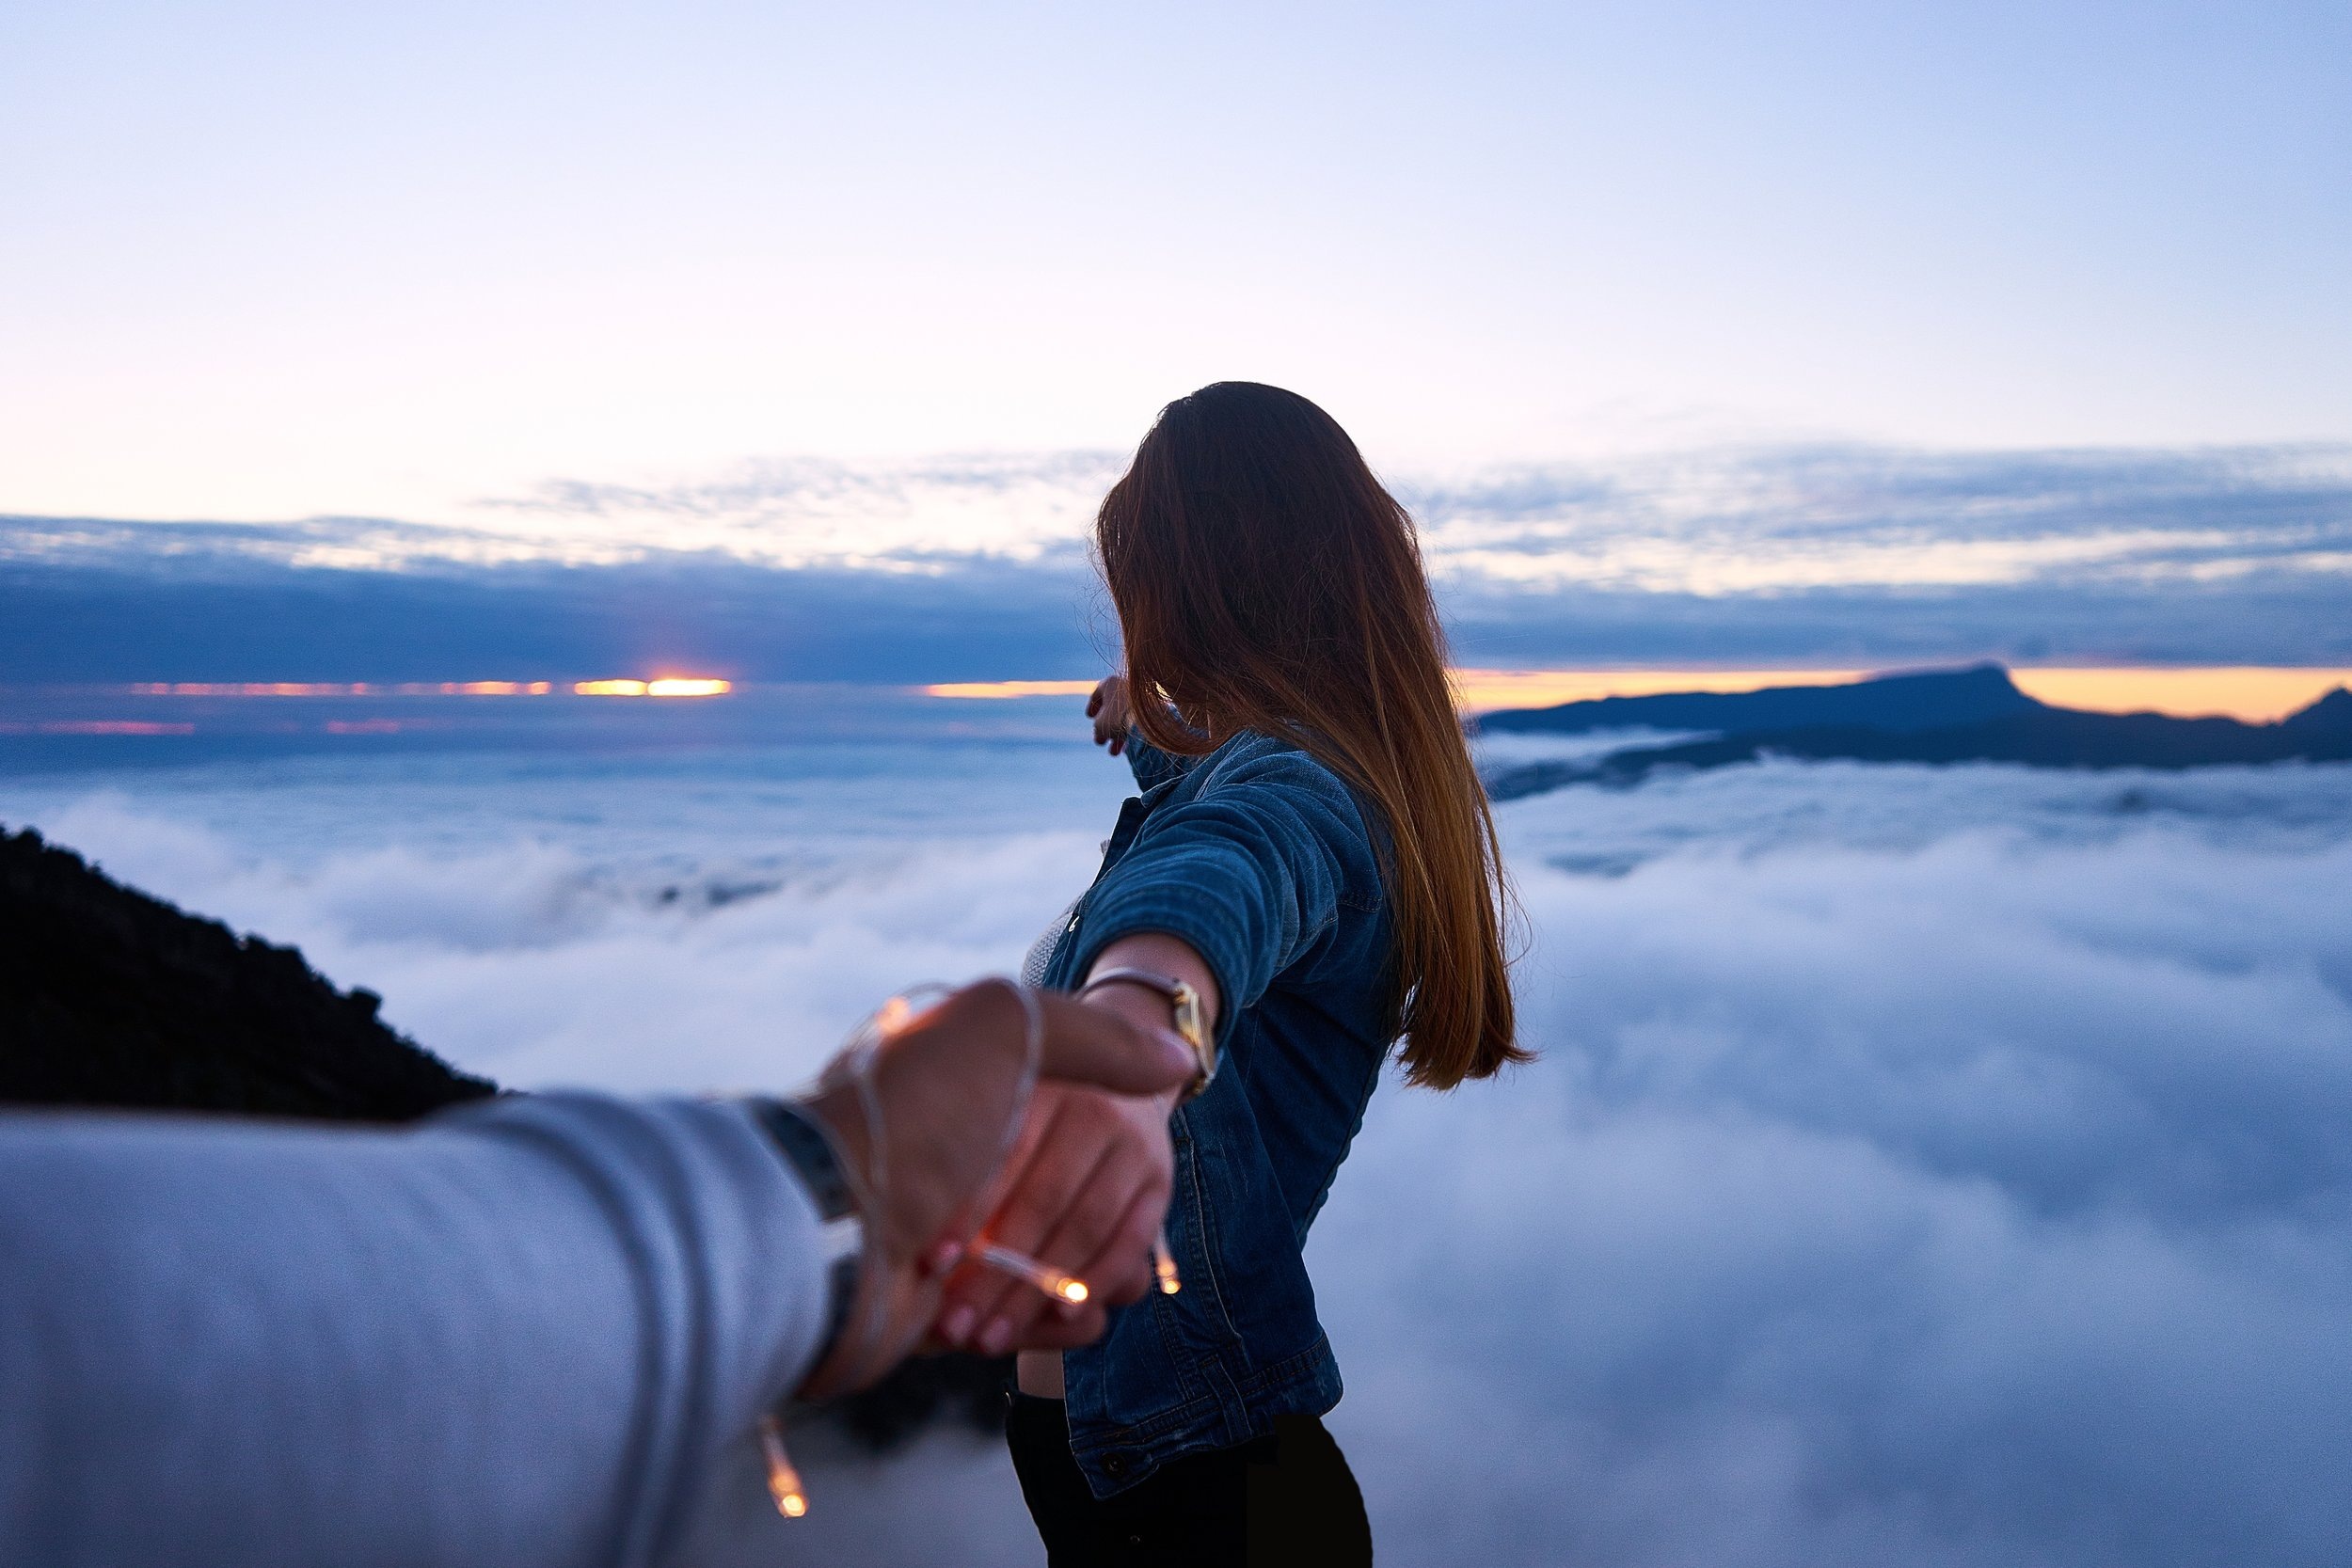 Open relationships can be incredibly rewarding, especially if the decision to open up was motivated by pro-relationship reasons. Couples counseling at Tri-Valley Relationship Therapy can help you and your partner negotiate opening up your relationship.